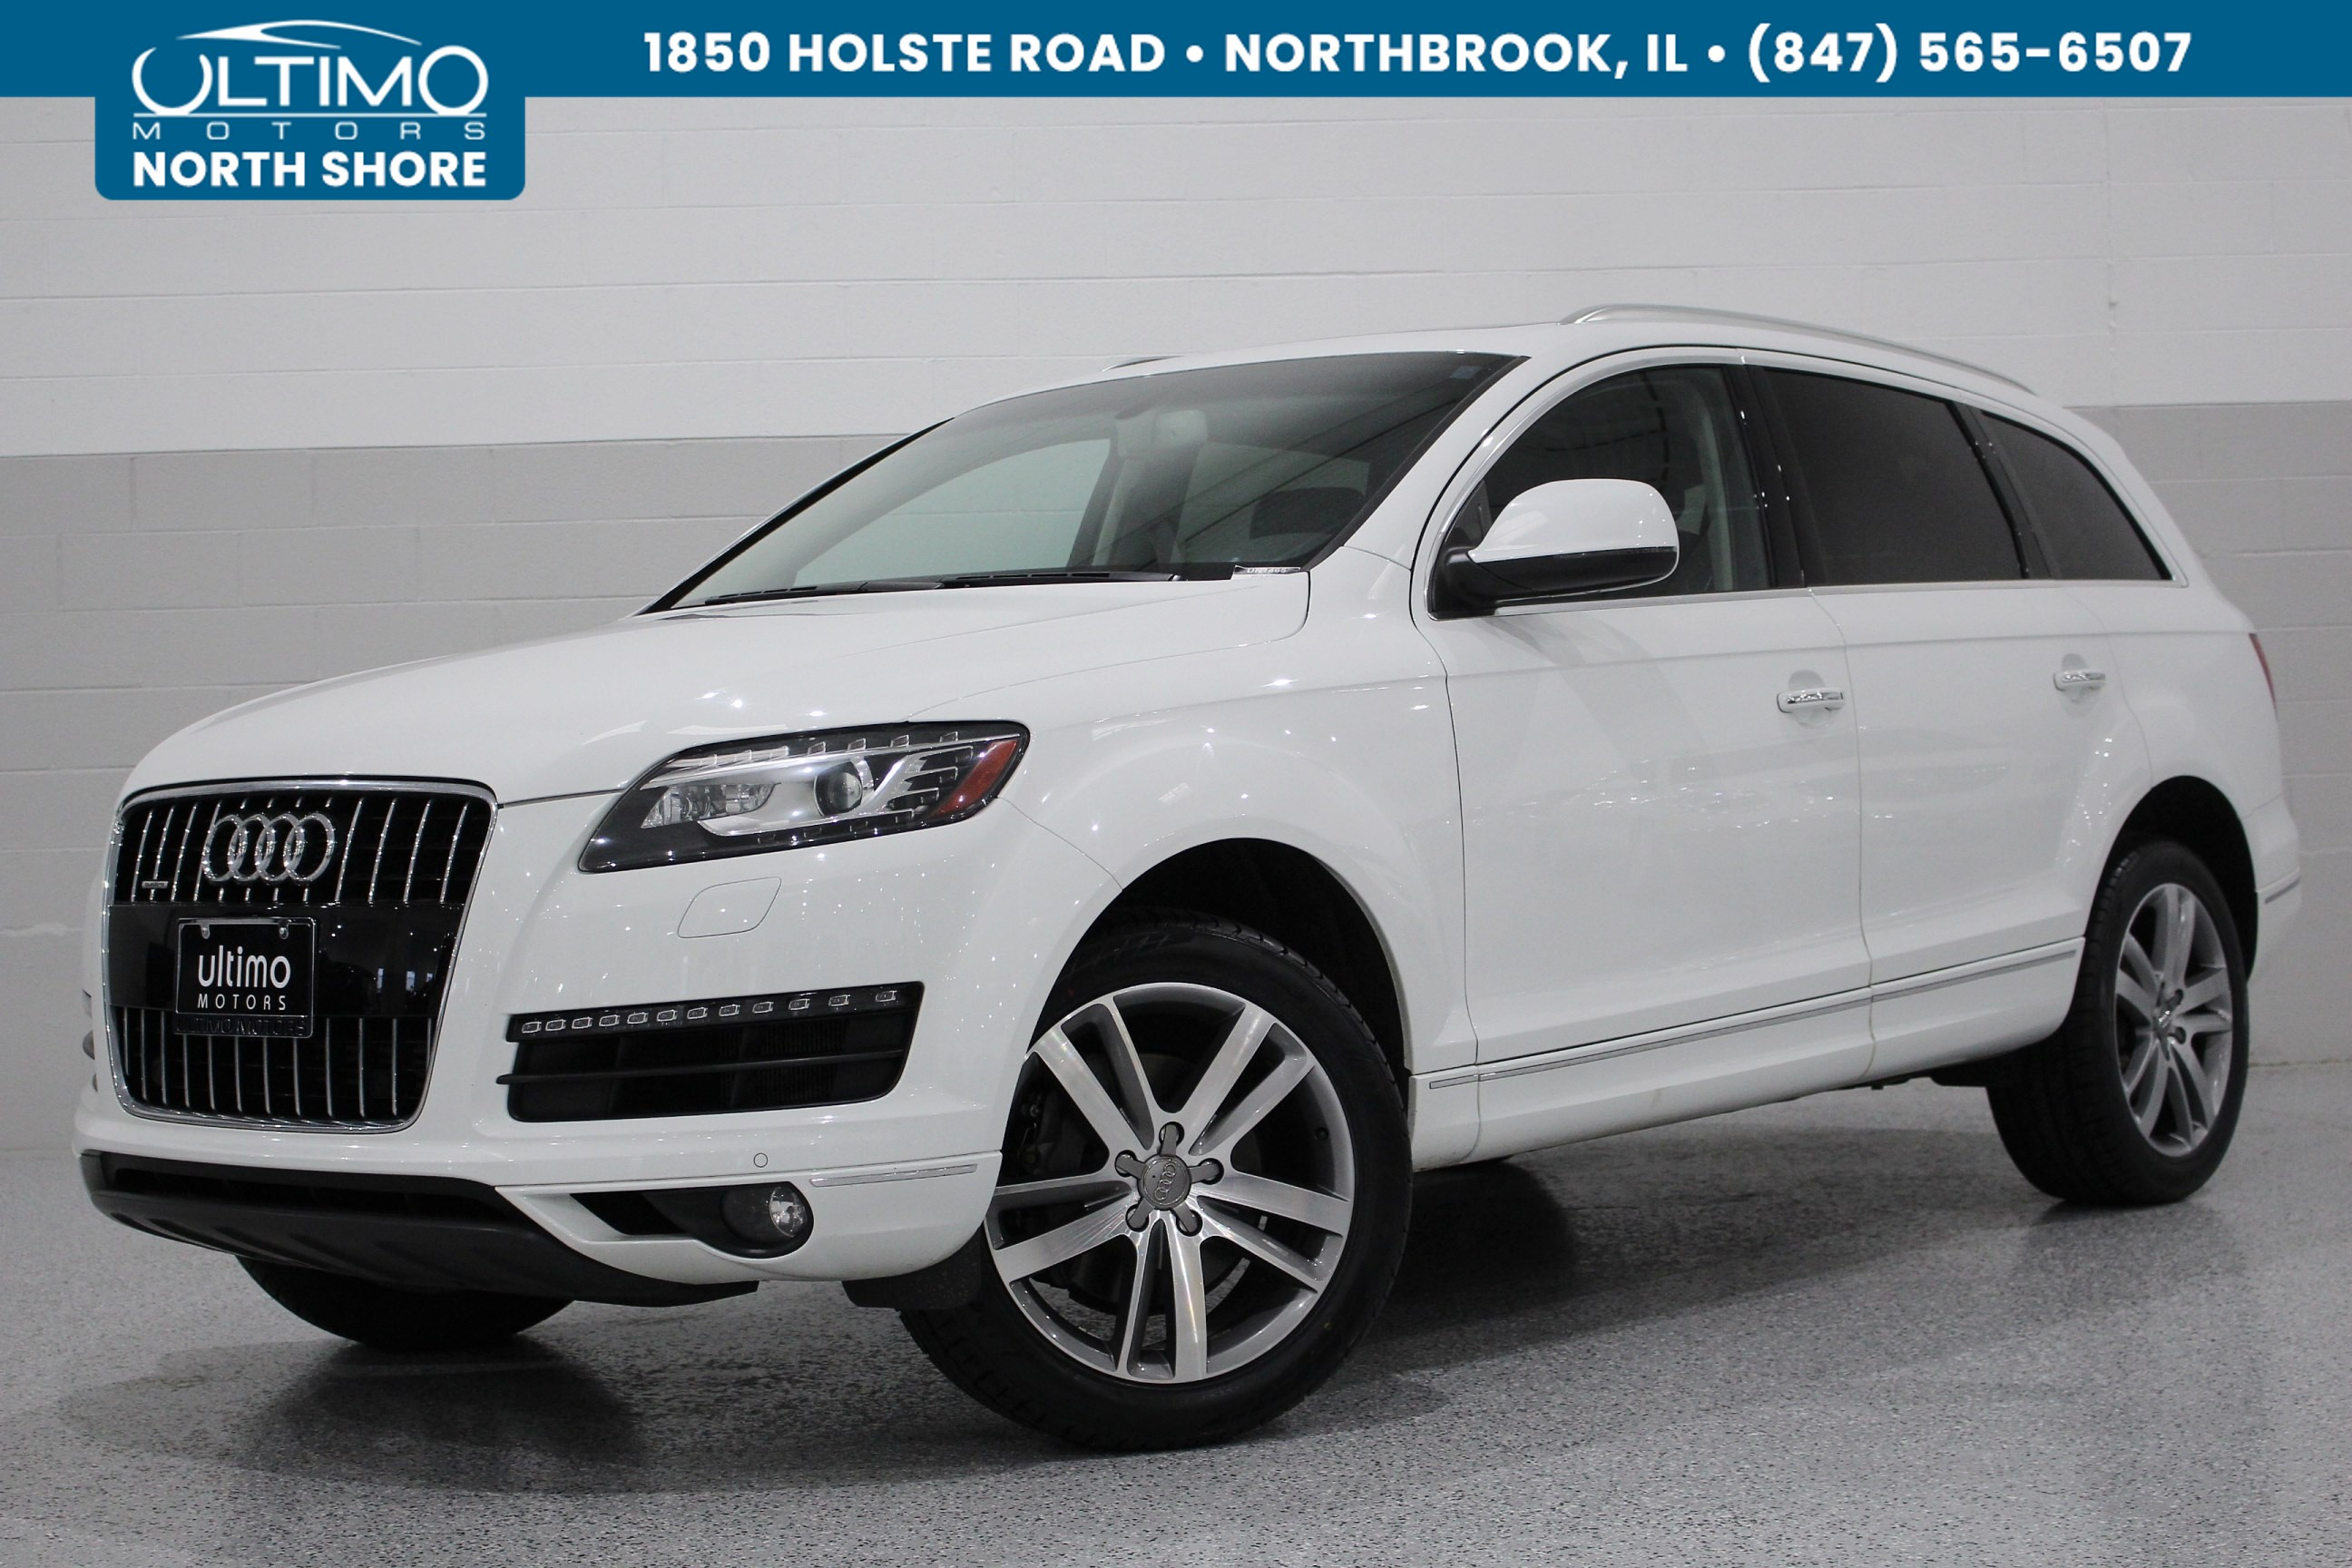 Pre-Owned 2015 Audi Q7 3.0T Premium Plus, 20 Inch Wheels, Pano Roof, Cold Weather F&R, BOSE.